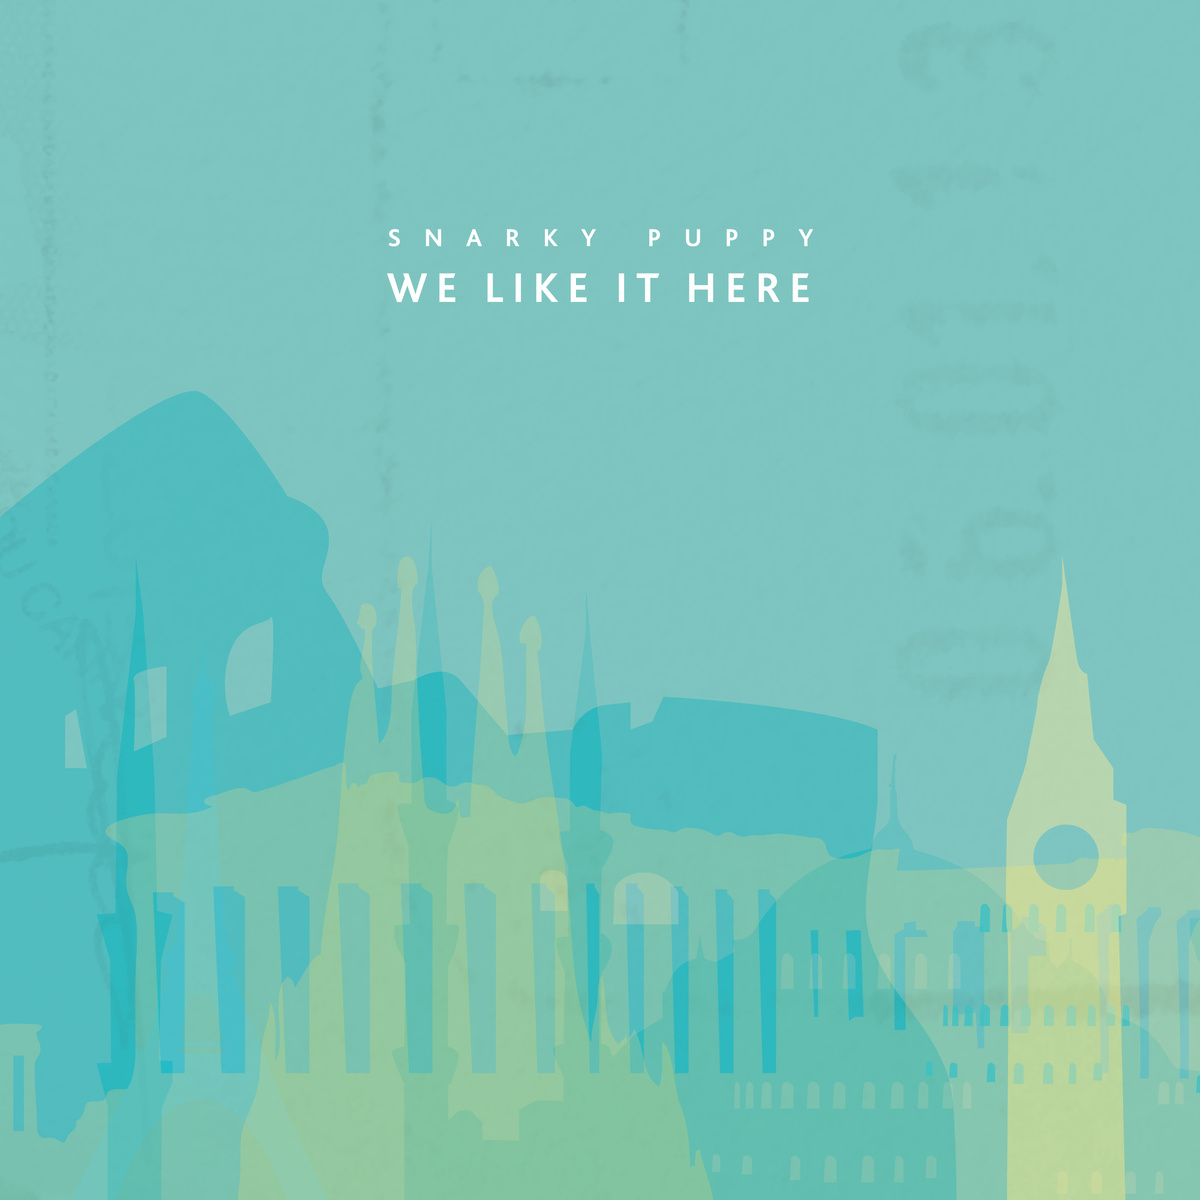 Snarky Puppy – We Like It Here (Album Review)